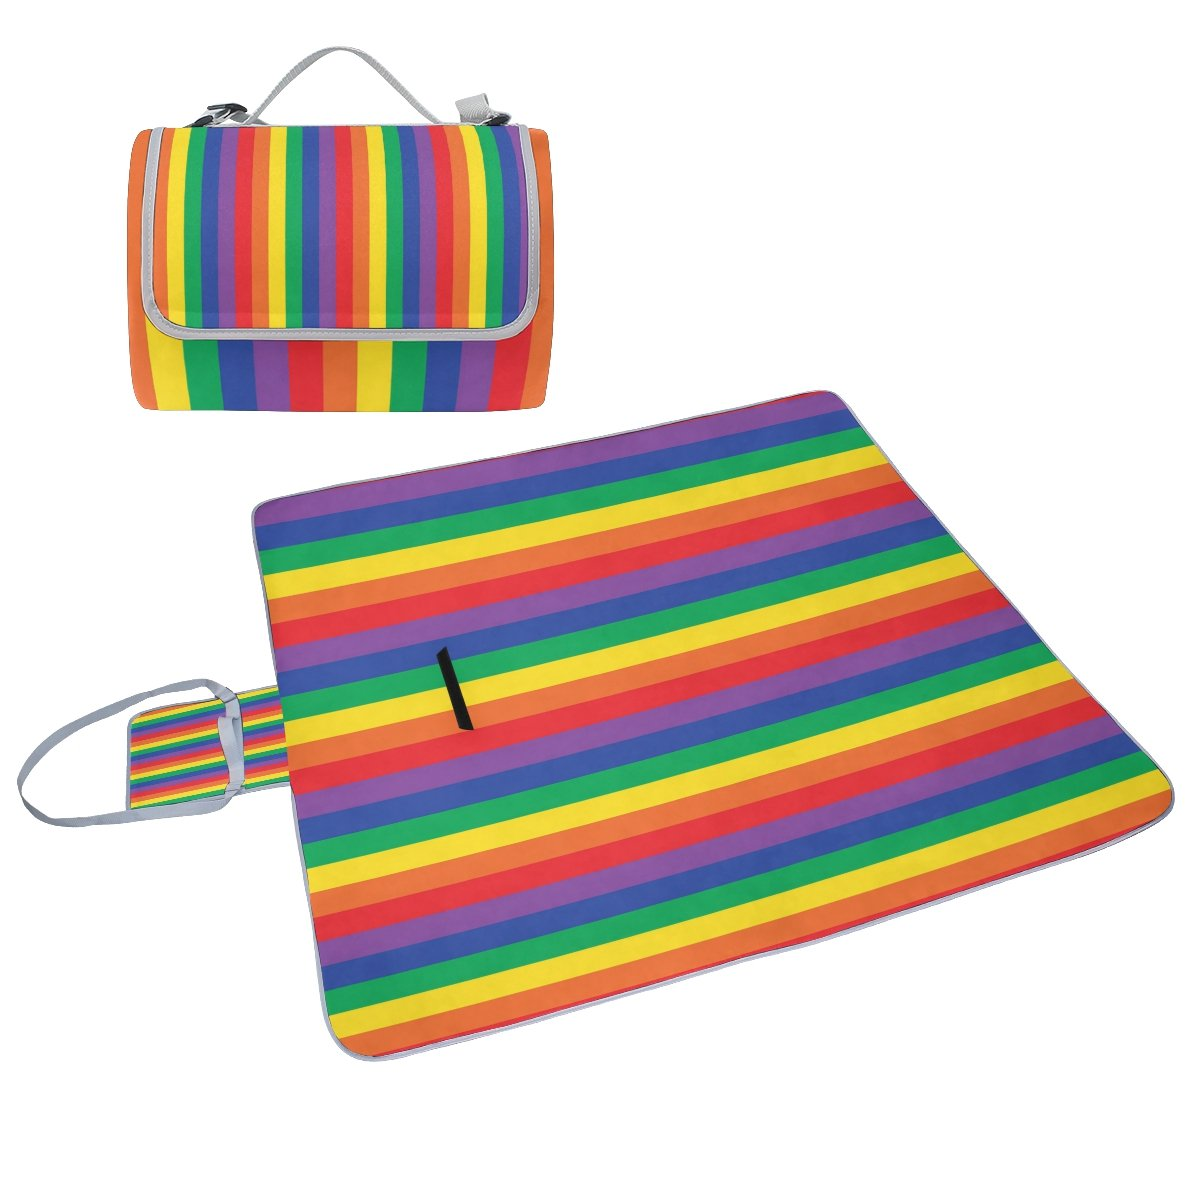 Naanle Rainbow Stripe Plaid Picnic Blanket Outdoor Picnic Blanket Tote Water-Resistant Backing Handy Camping Beach Hiking Mat by Naanle